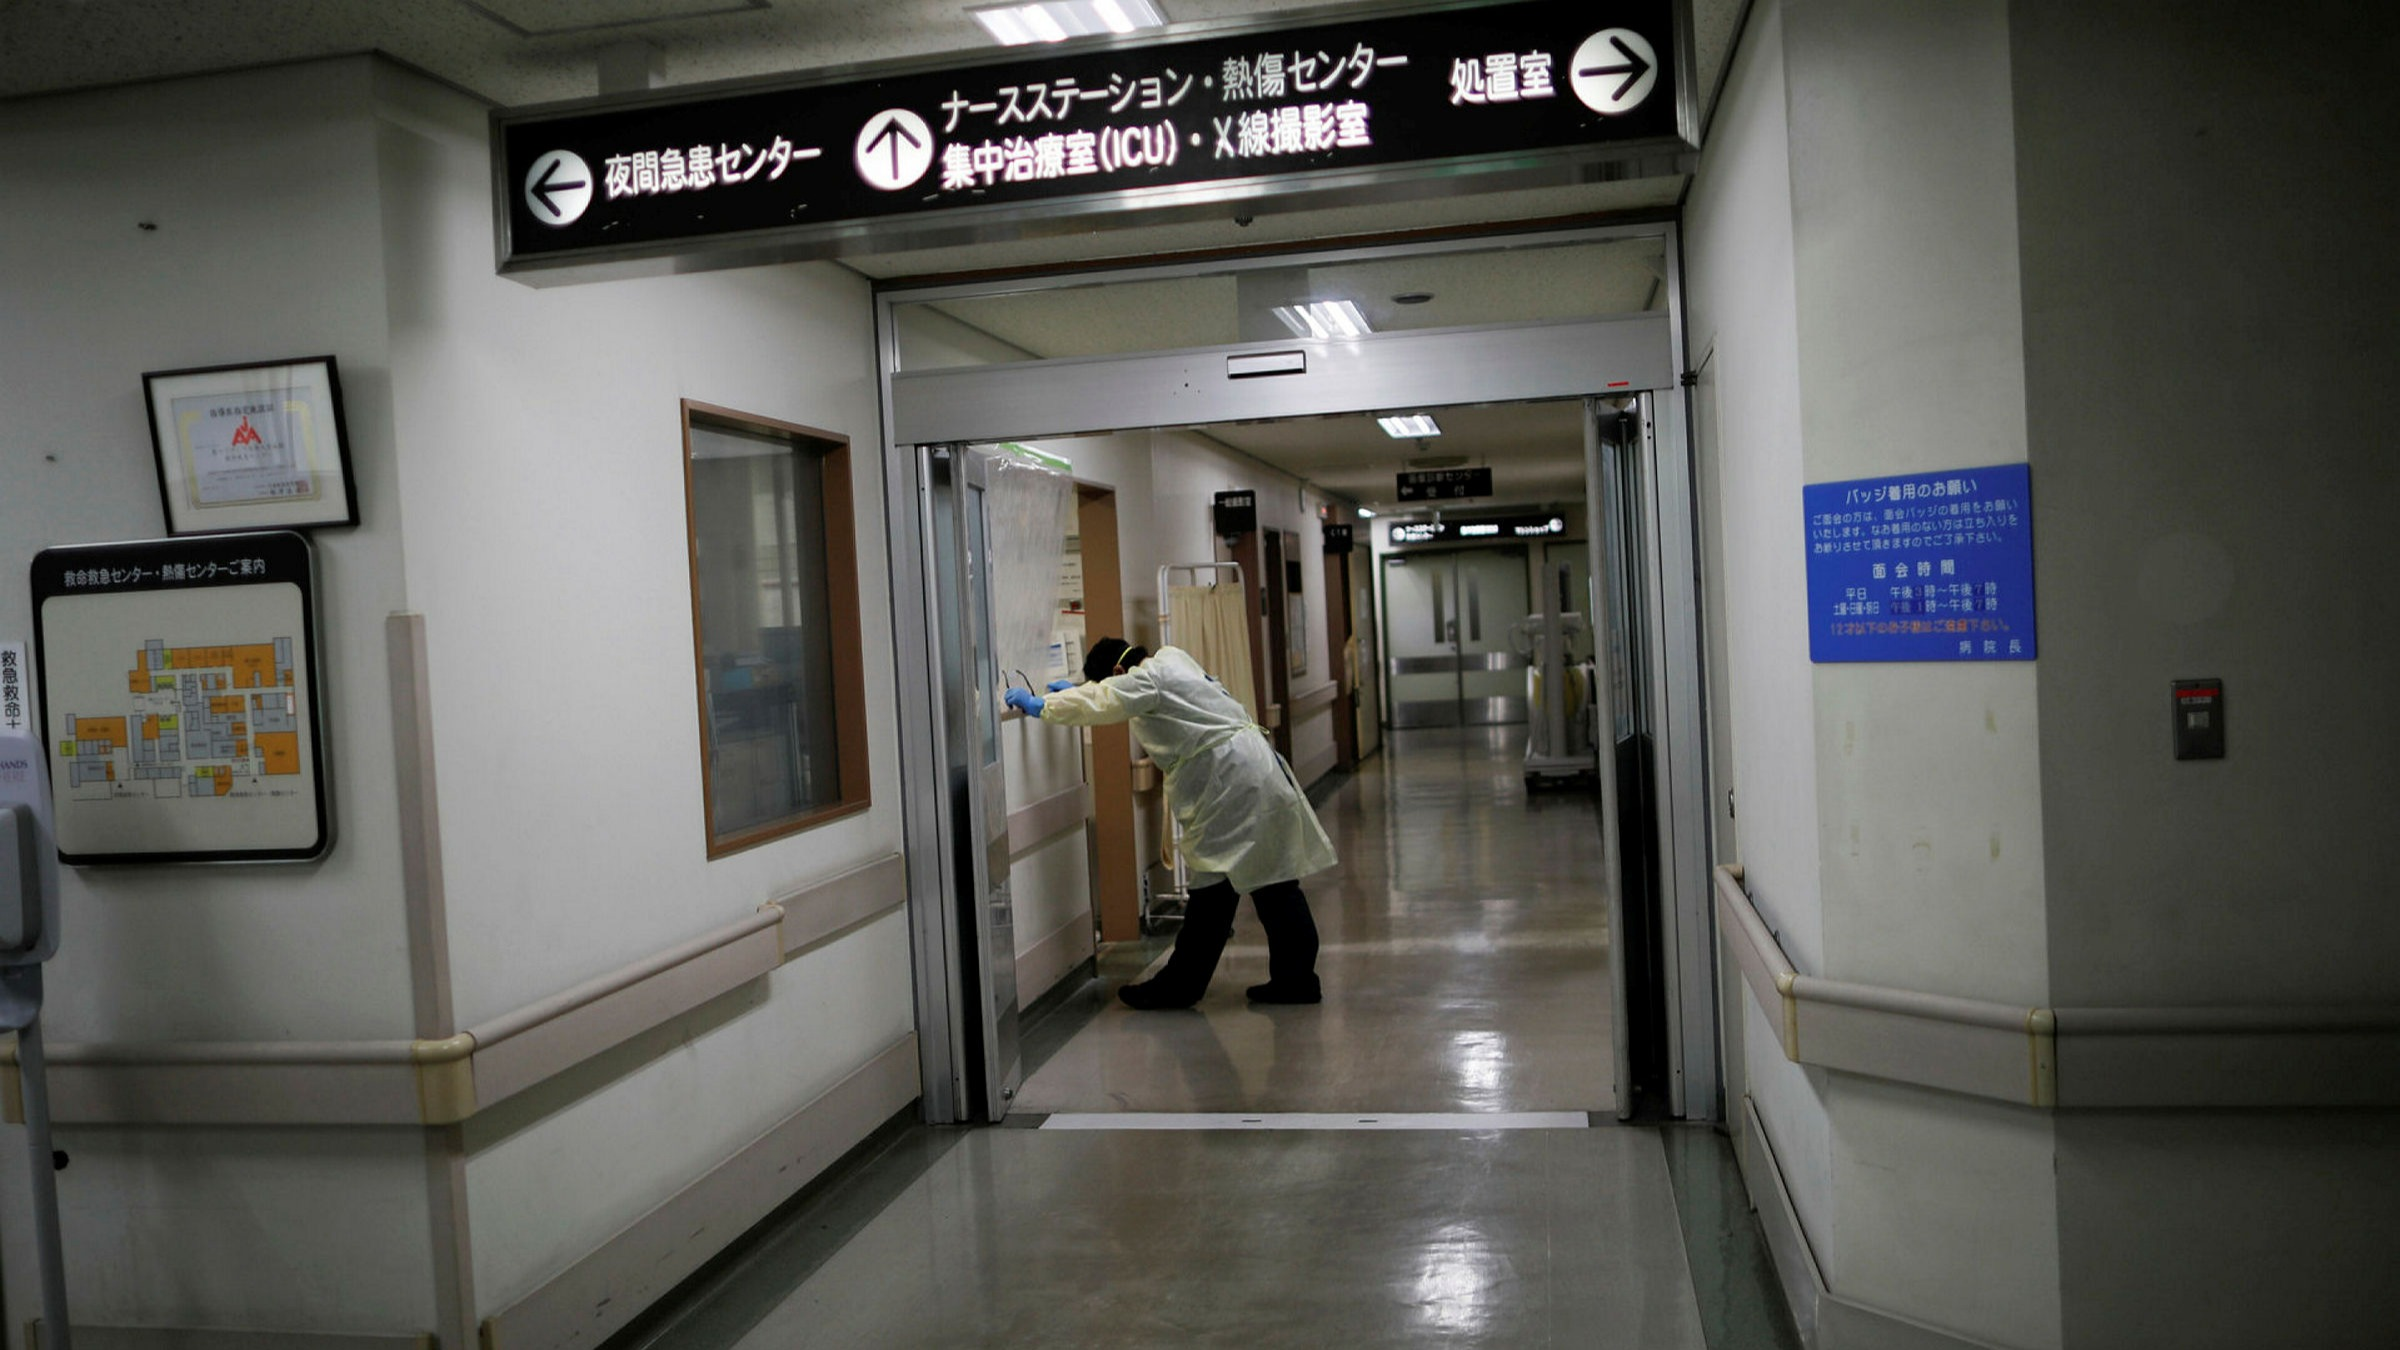 Japan's health system exposed as empty hospitals reject Covid-19 patients |  Financial Times